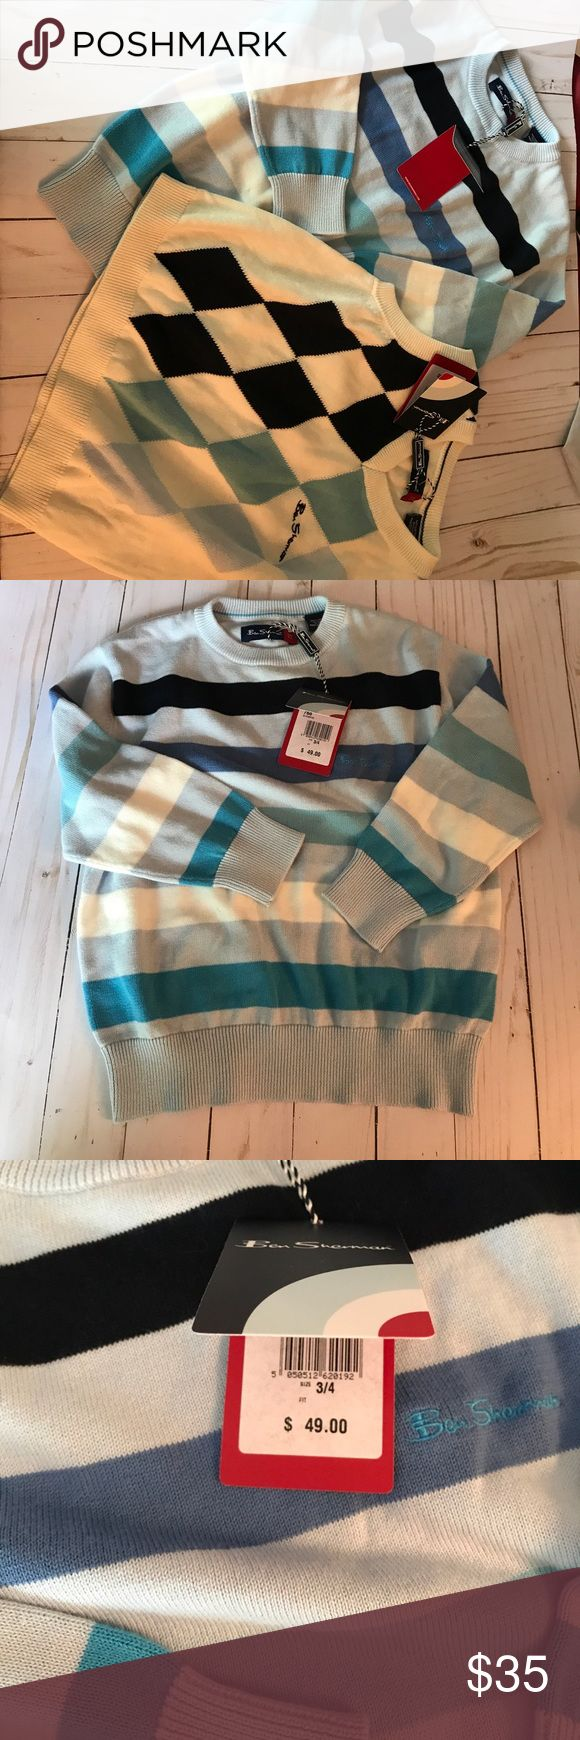 Ben Sherman Boys Sweaters NWT Size 3-4 Ben Sherman 100% cotton sweaters, new with tags, size 3-4.  The long sleeve sweater has stripes in shades of blue; the v-neck vest has an argyle pattern. Ben Sherman Shirts & Tops Sweaters